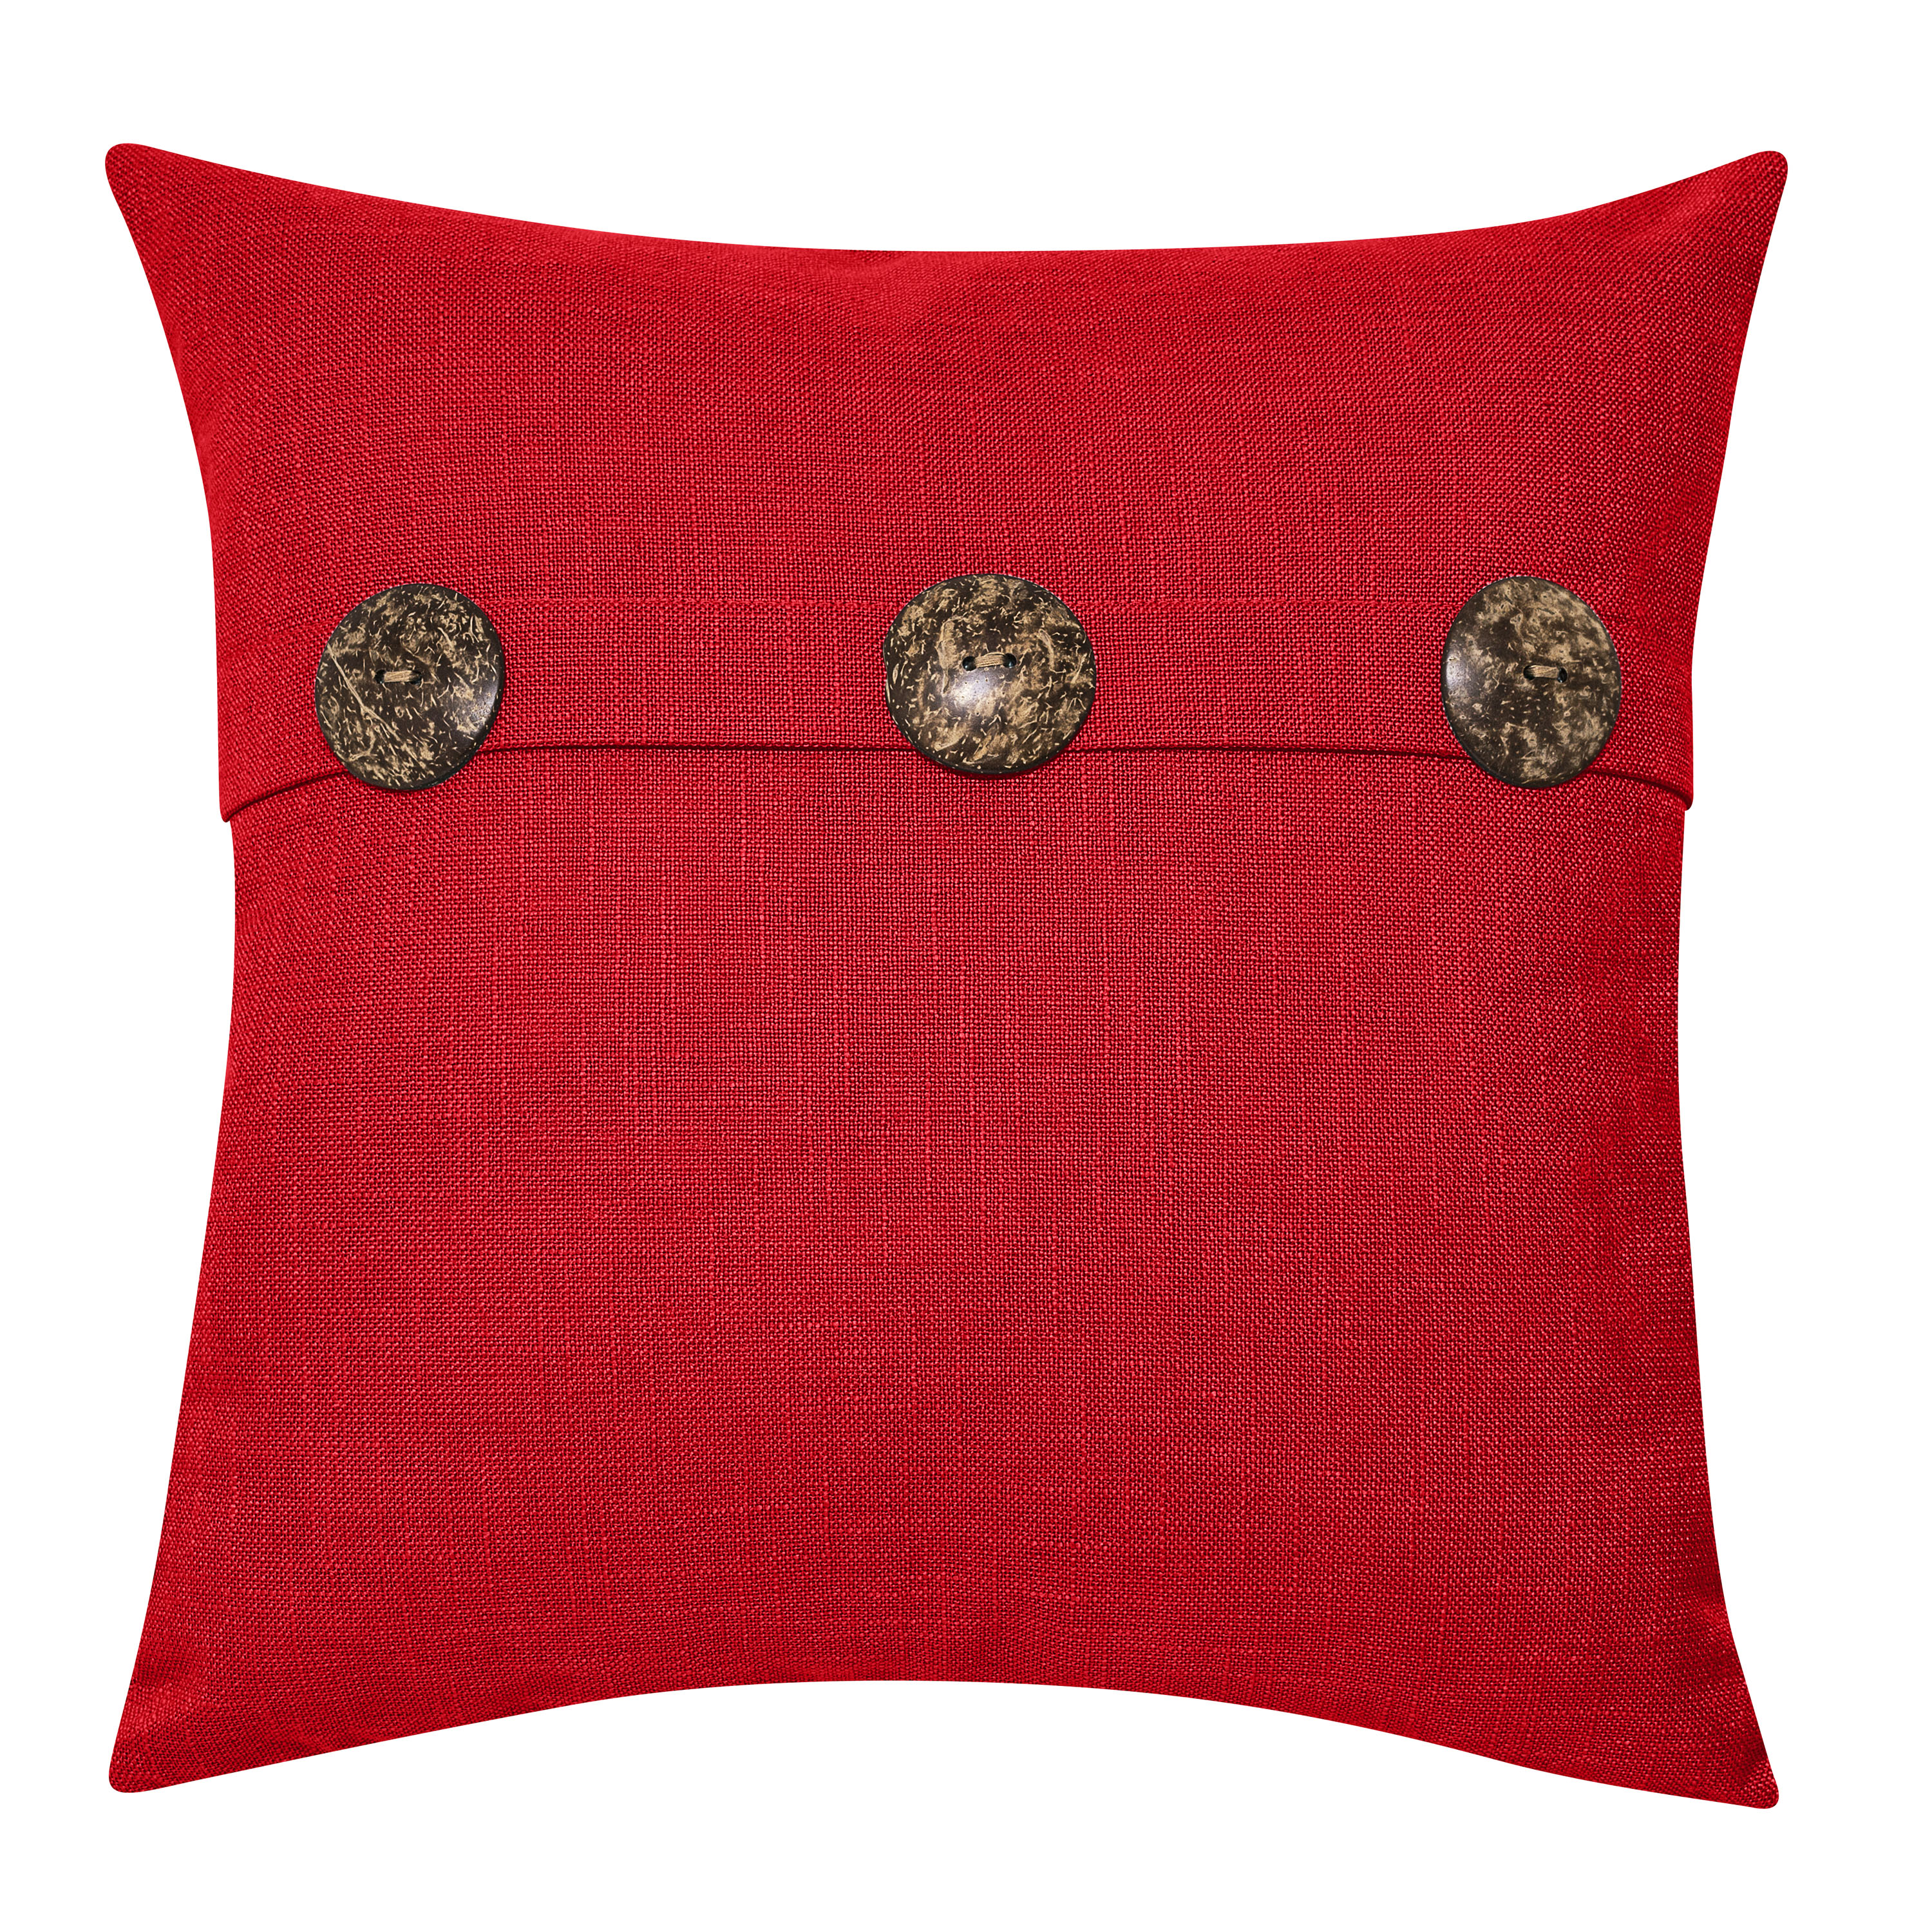 "Better Homes & Gardens Feather Filled Three Button Decorative Throw Pillow, 20"" x 20"", Ivory"